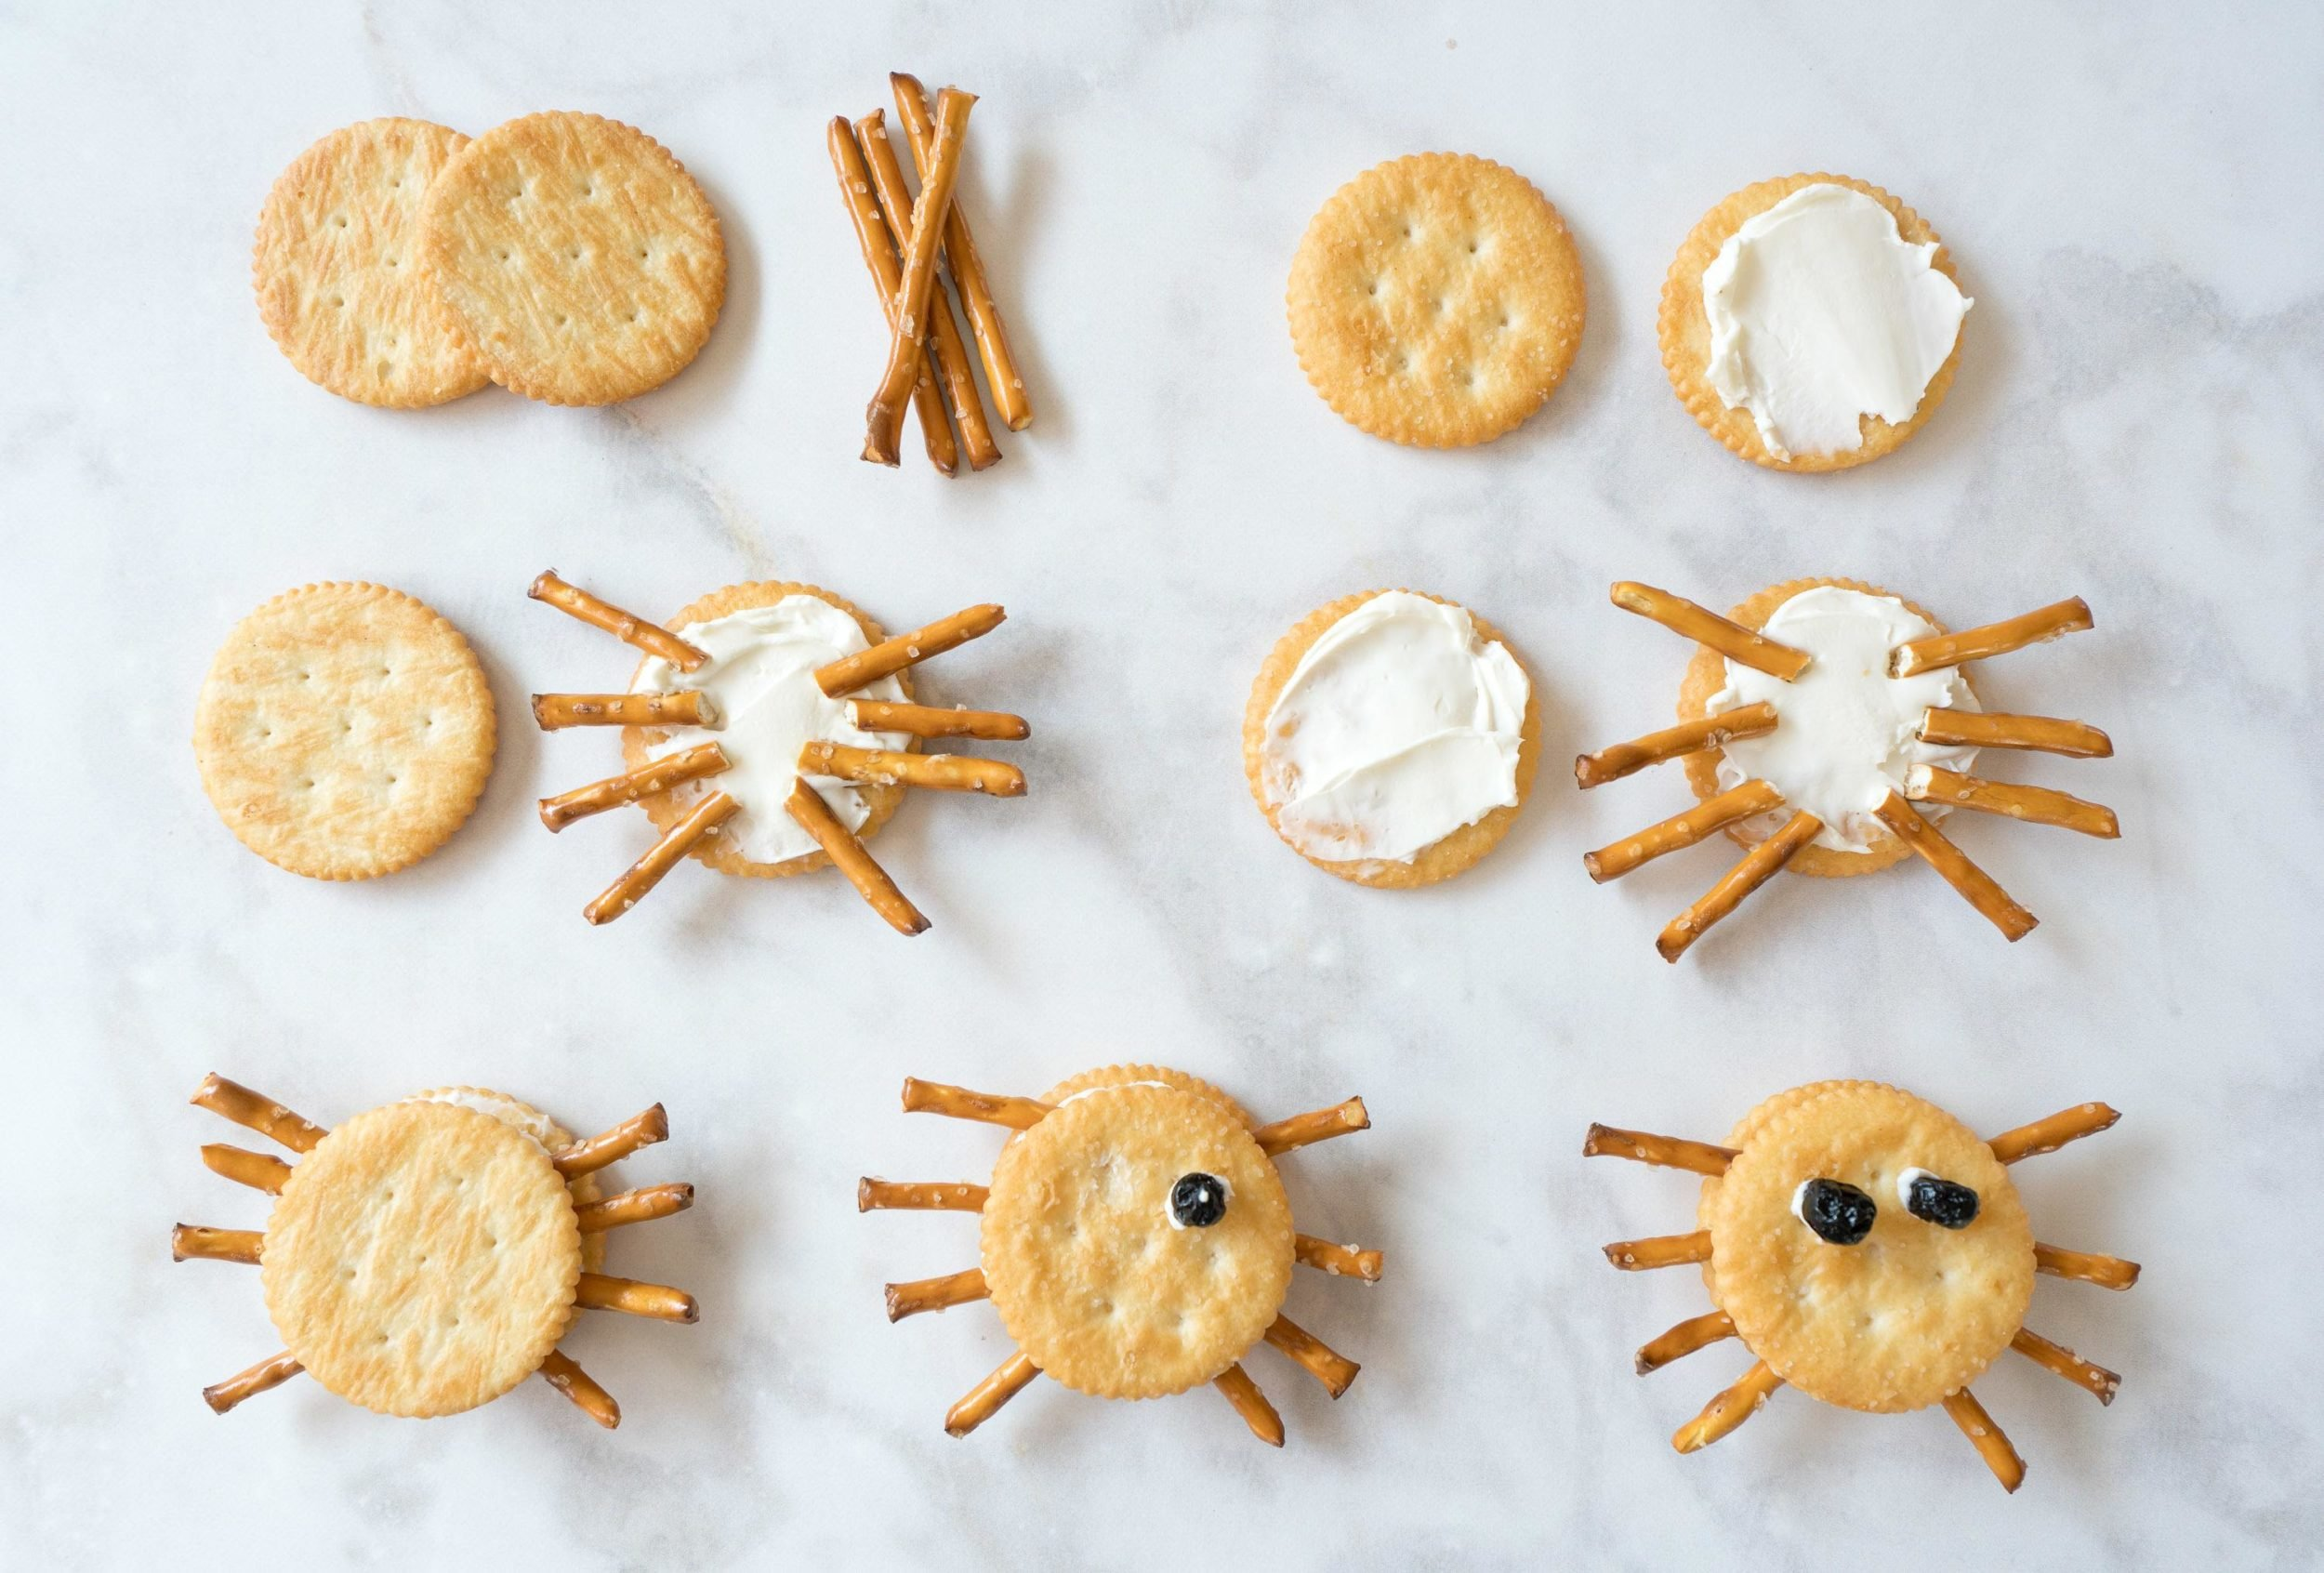 How to make spider cracker Halloween snacks for kids in 7 easy steps.